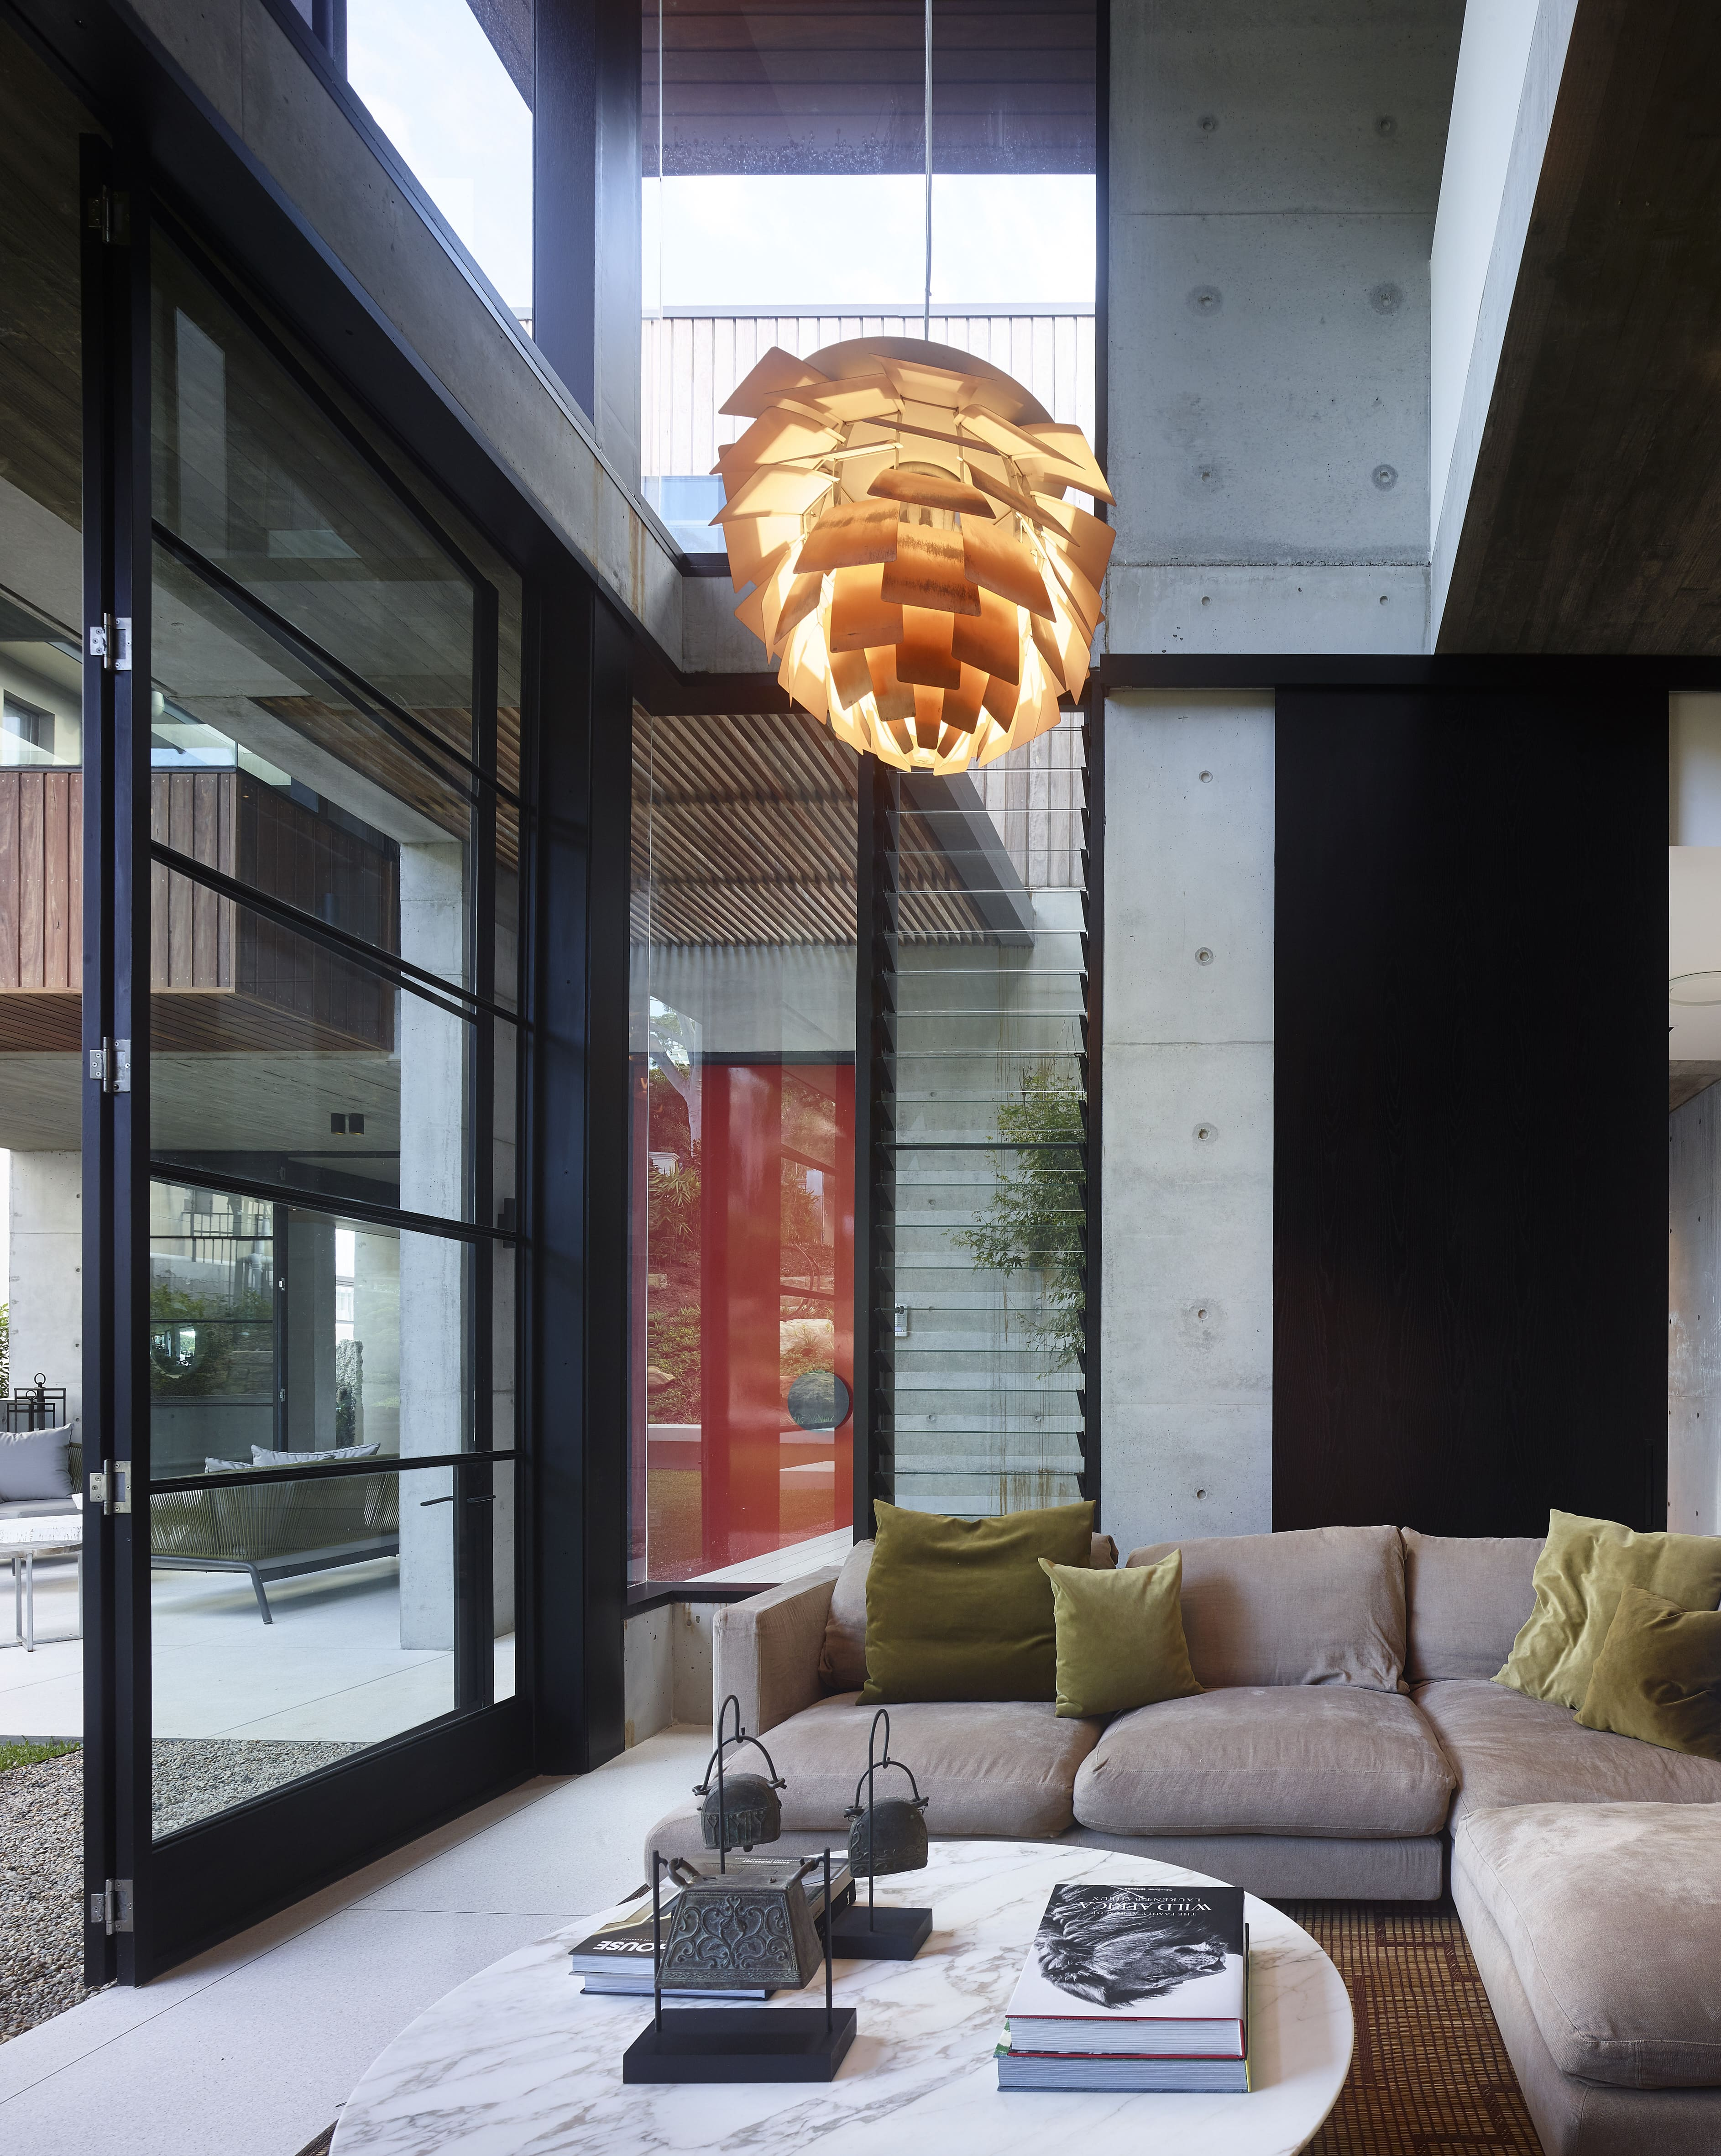 Gallery Of Mosman House By Shaun Lockyer Architects Local Australian Design And Interiors Mosman, Nsw Image 14 Min